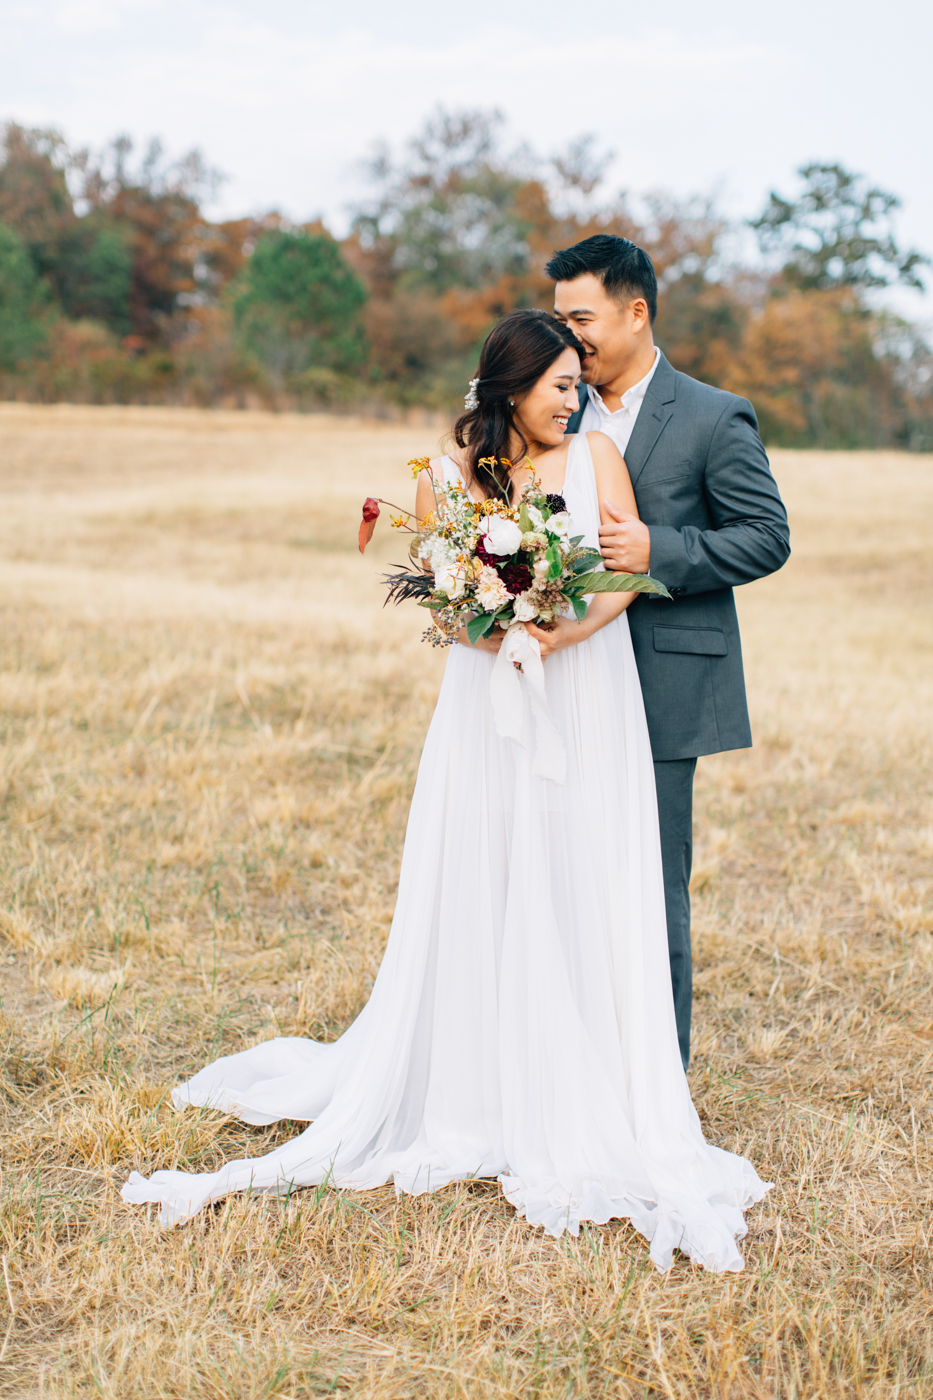 Four Corners Photography Atlanta Best Wedding Photographer Atlanta Best Newborn Photographer Atlanta Elopment Atlanta Maternity Photographer Wedding Photographer Southeast Fine Art Photography Leanne Marshall Grace and Tony Engagement Session-316.jpg